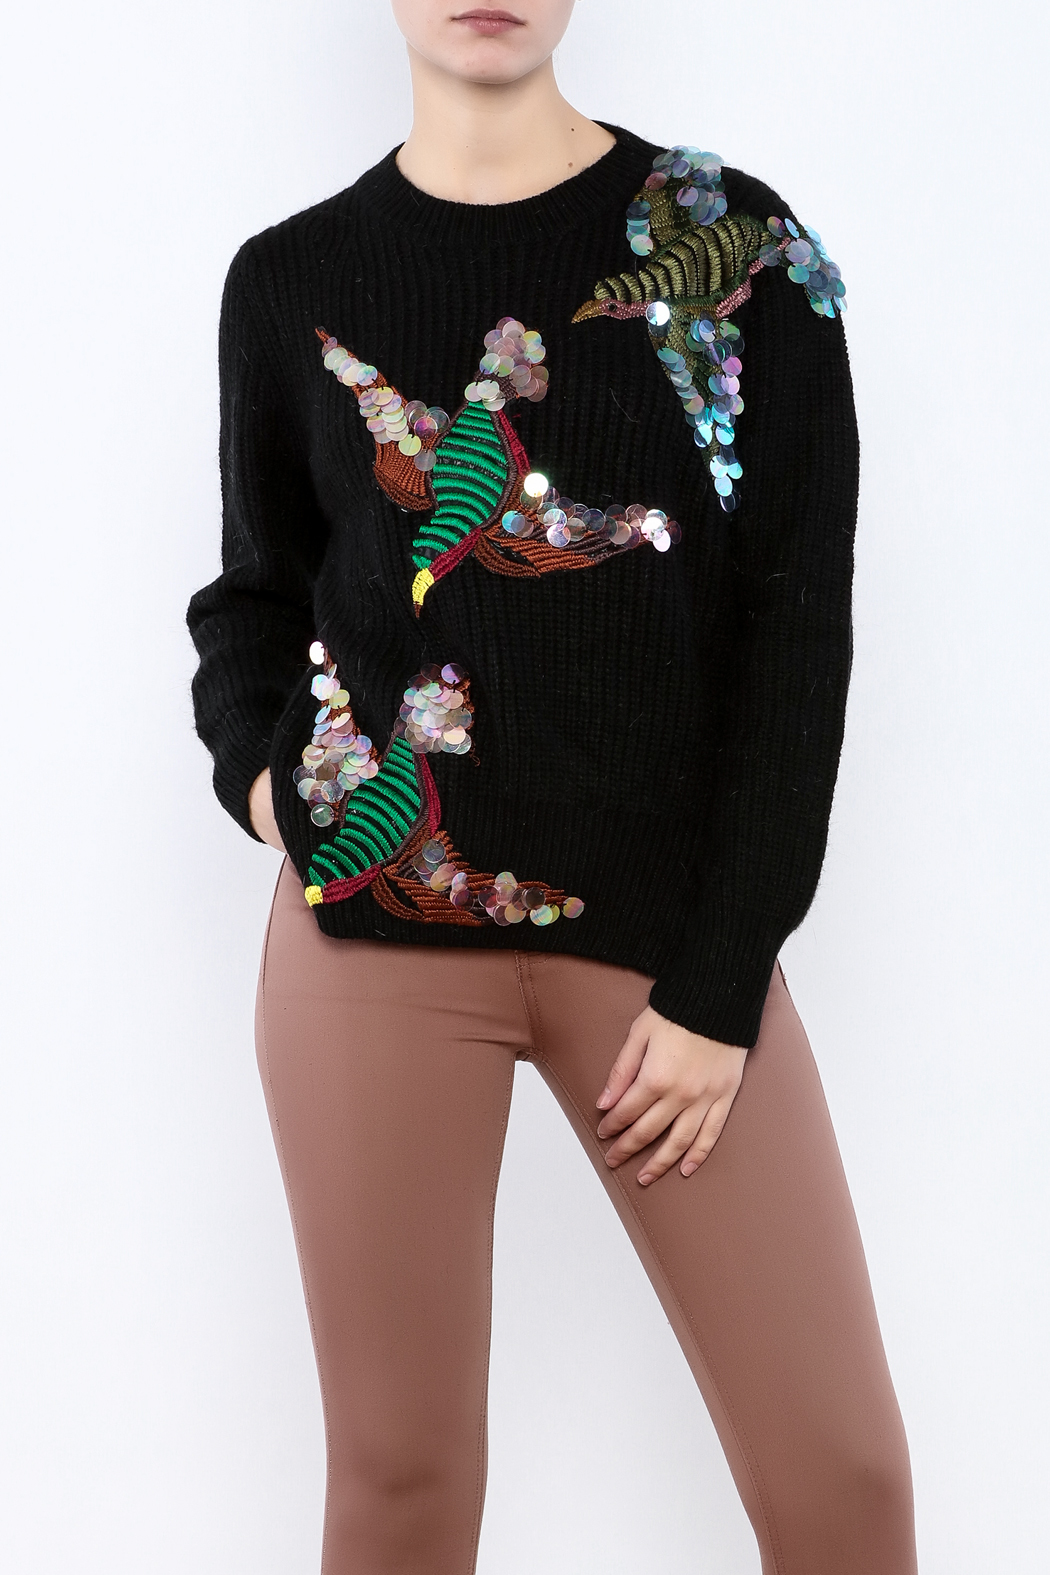 THINK CLOSET Sequined Starling Sweater - Main Image